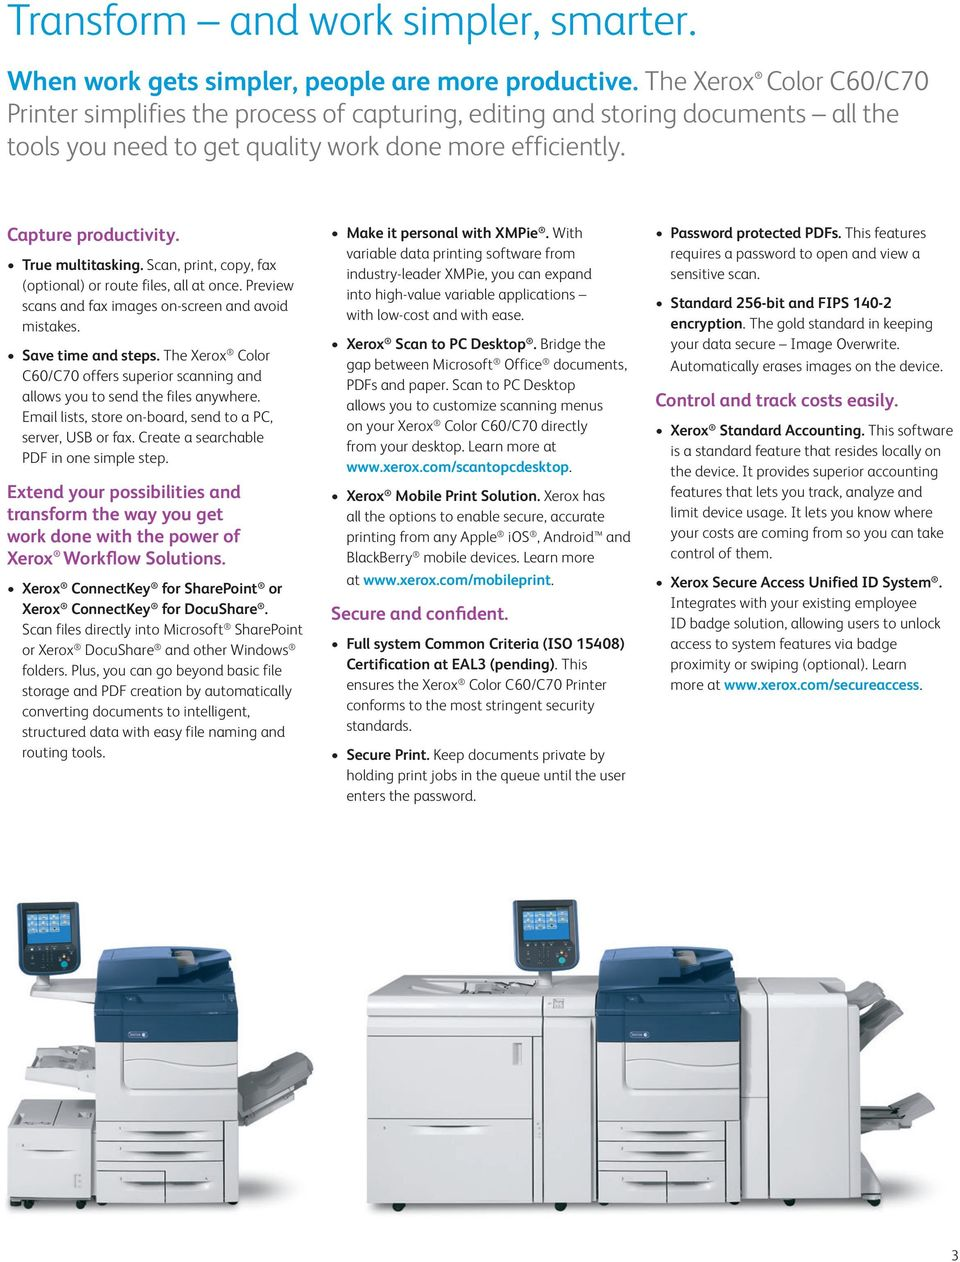 Xerox 4110 Print Server Network Scan Driver for Windows Download